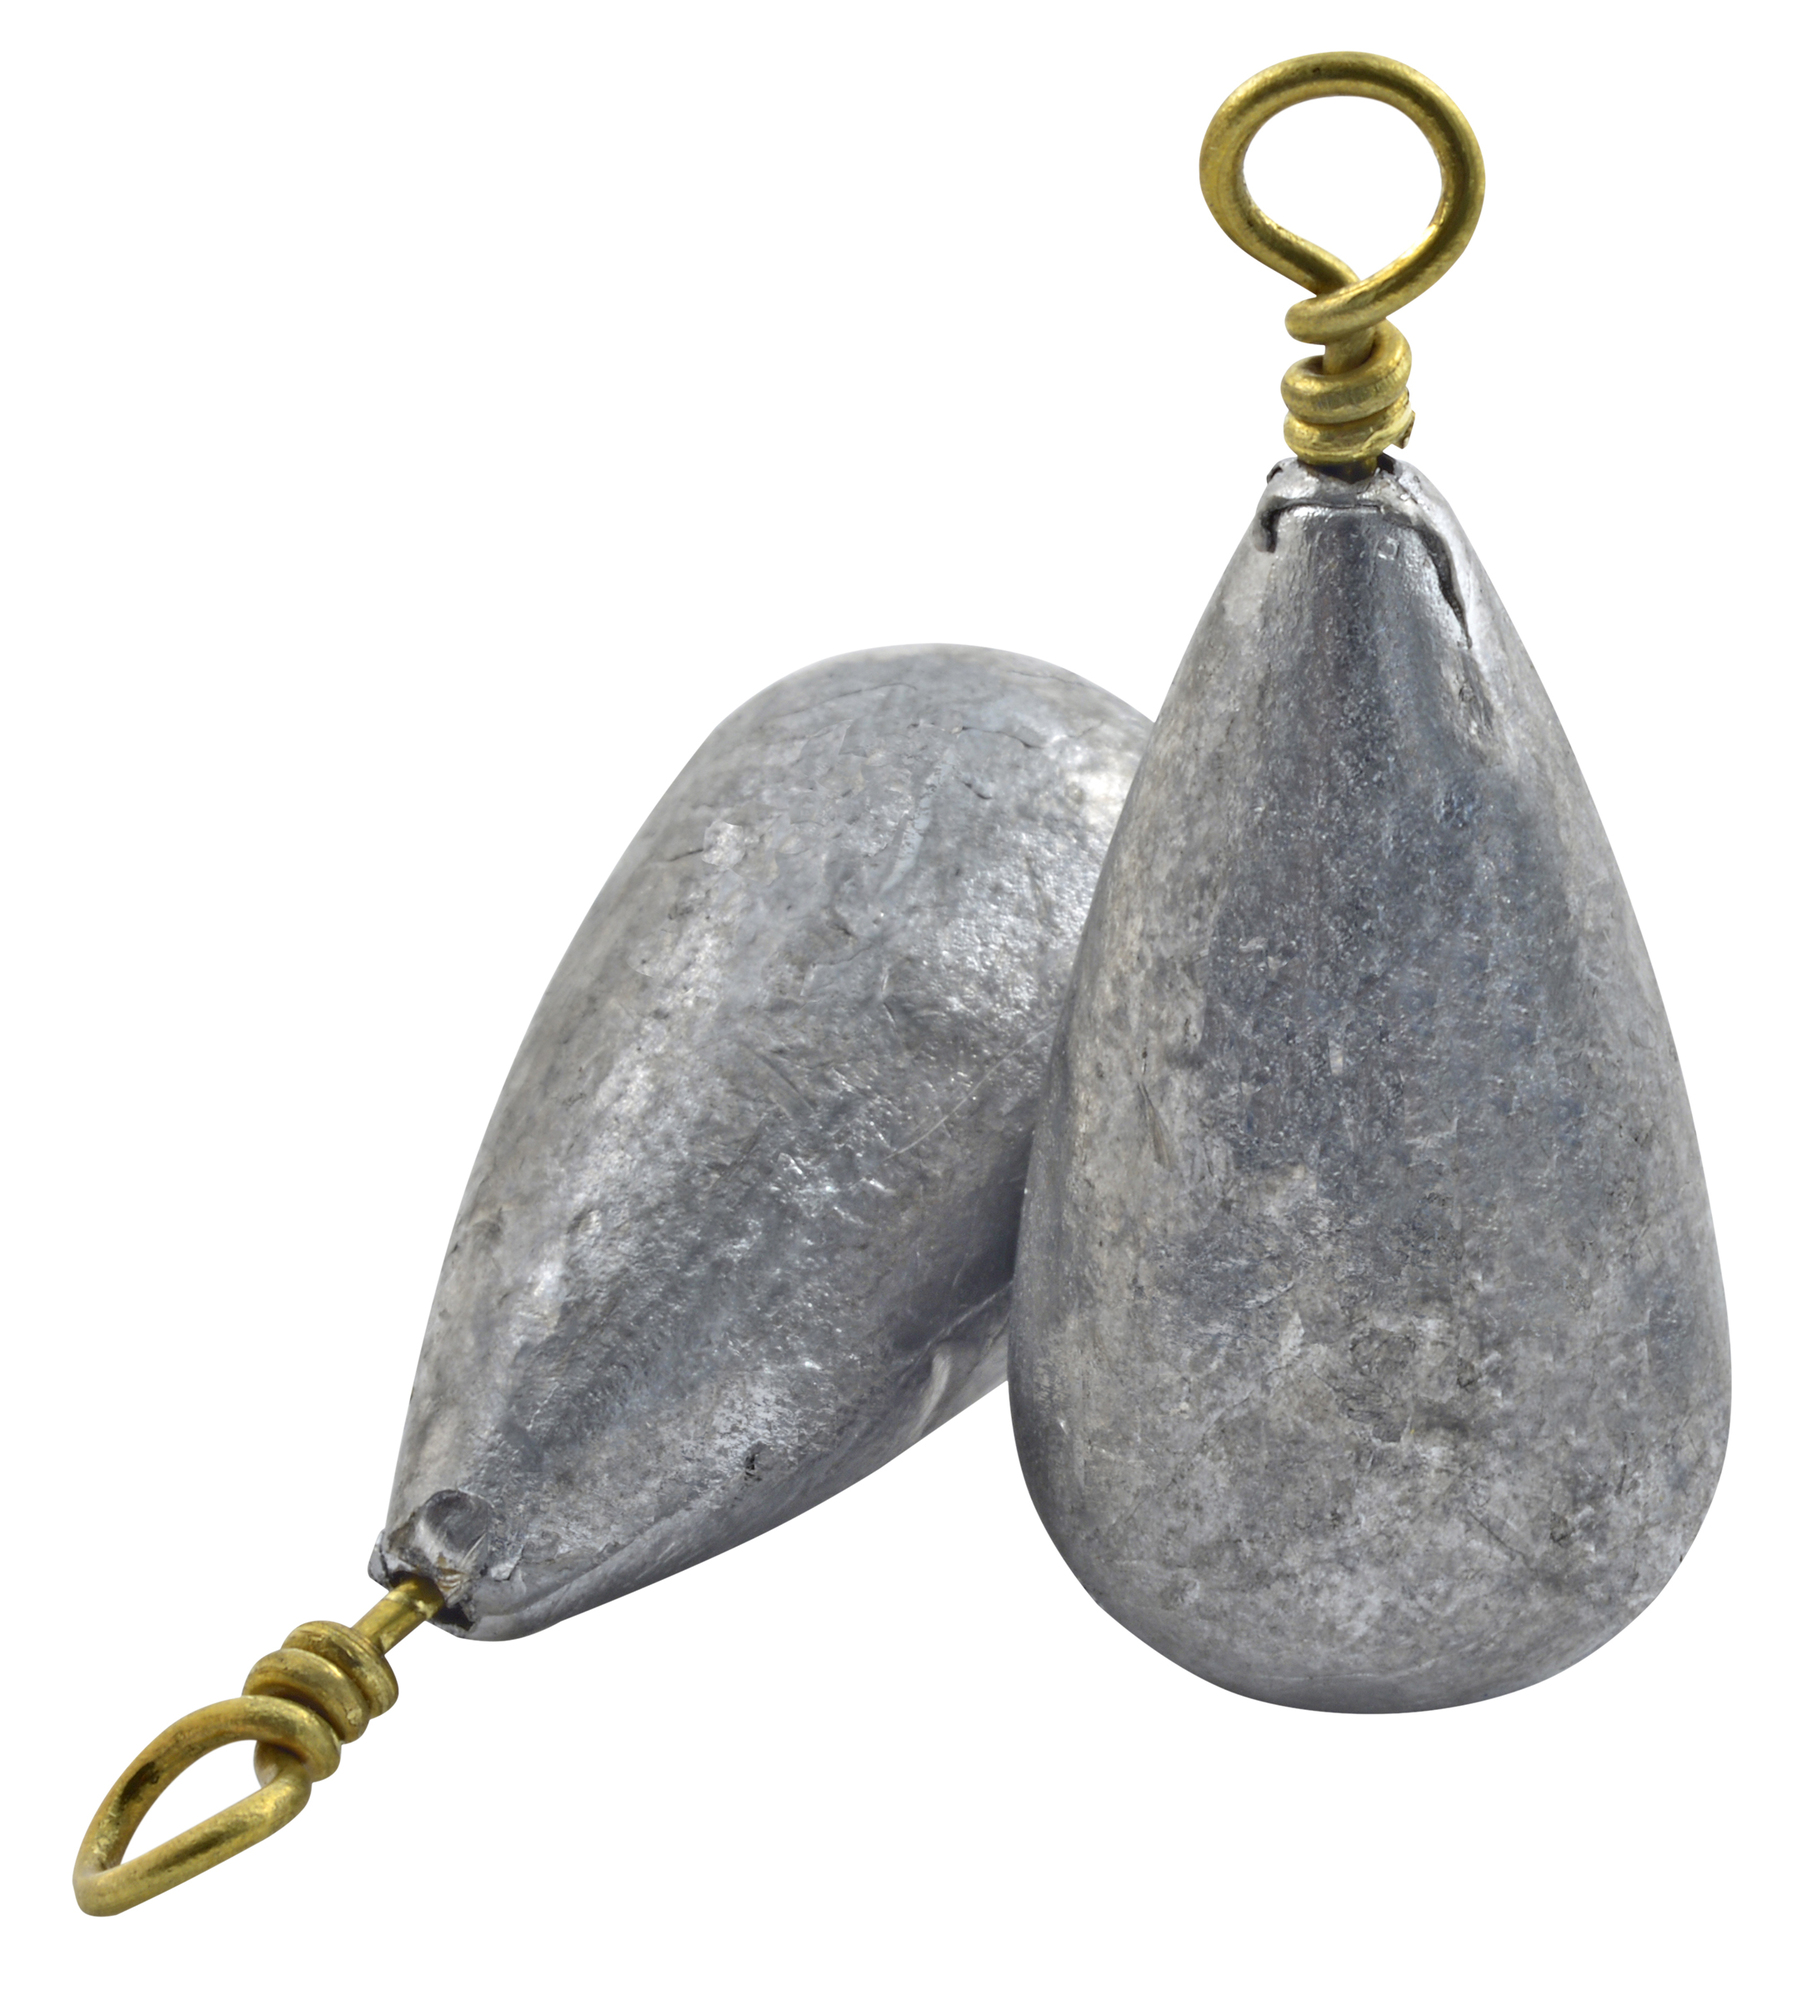 weights select 5 LB Bass Casting  Sinker Fishing Sinkers